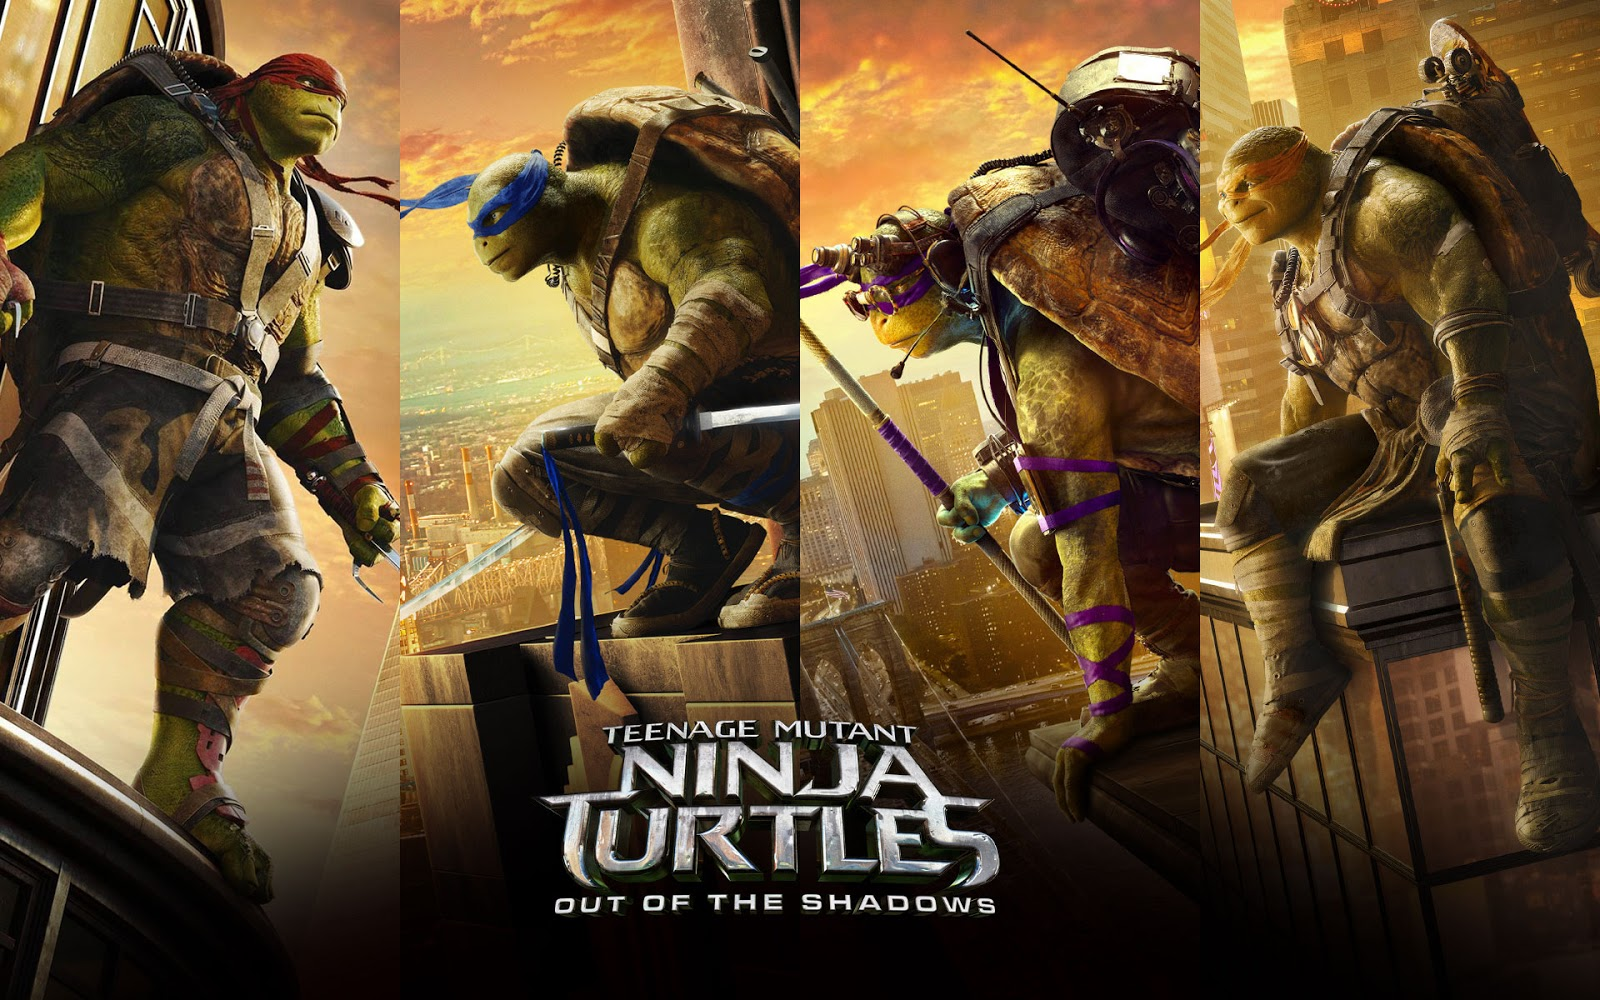 Teenage Mutant Ninja Turtles Out Of The Shadows Movie Review